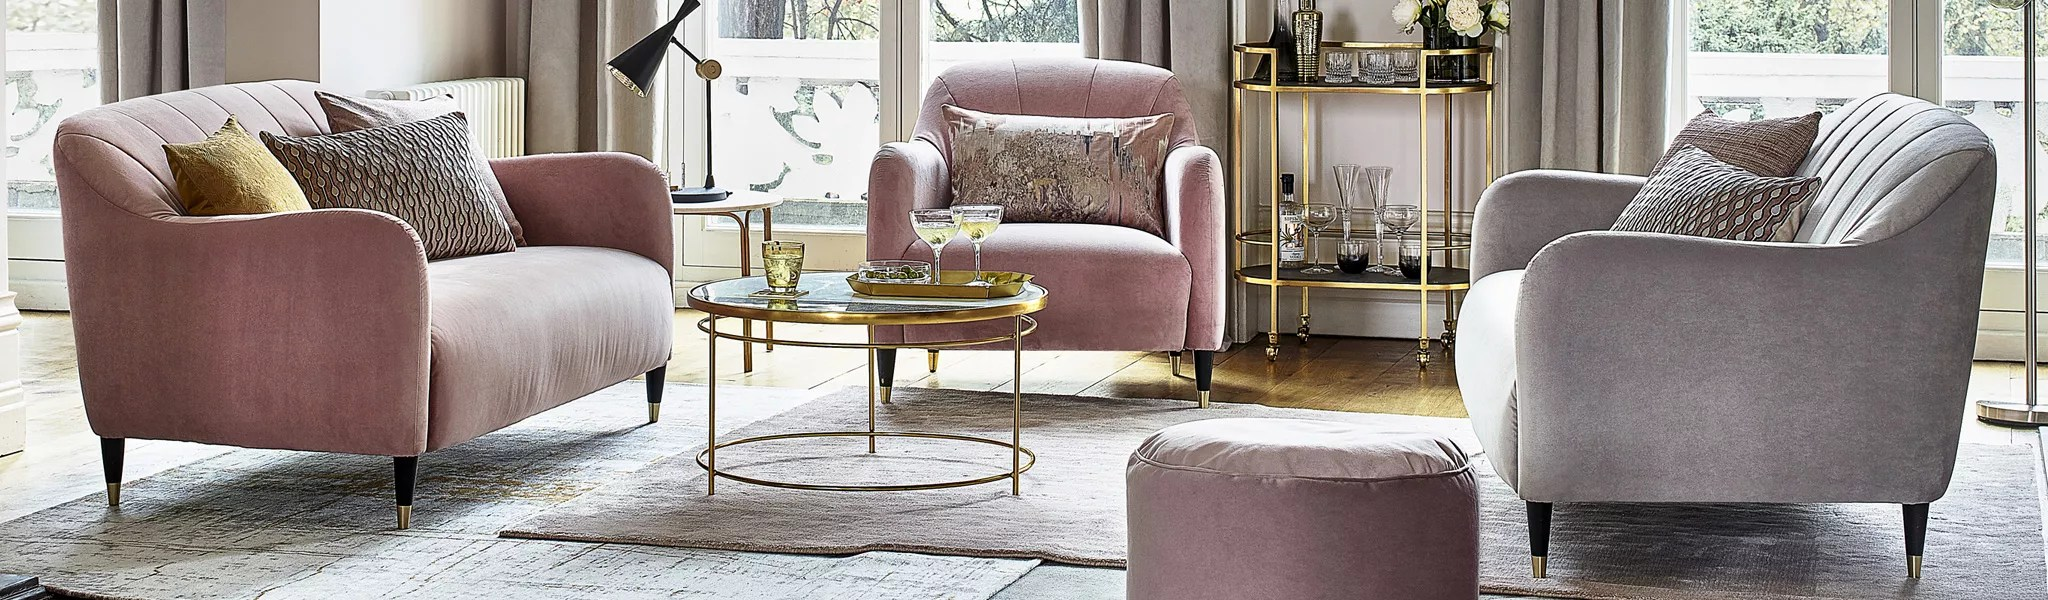 Sofa Wholesalers Uk How To Shop For The Right Sofa